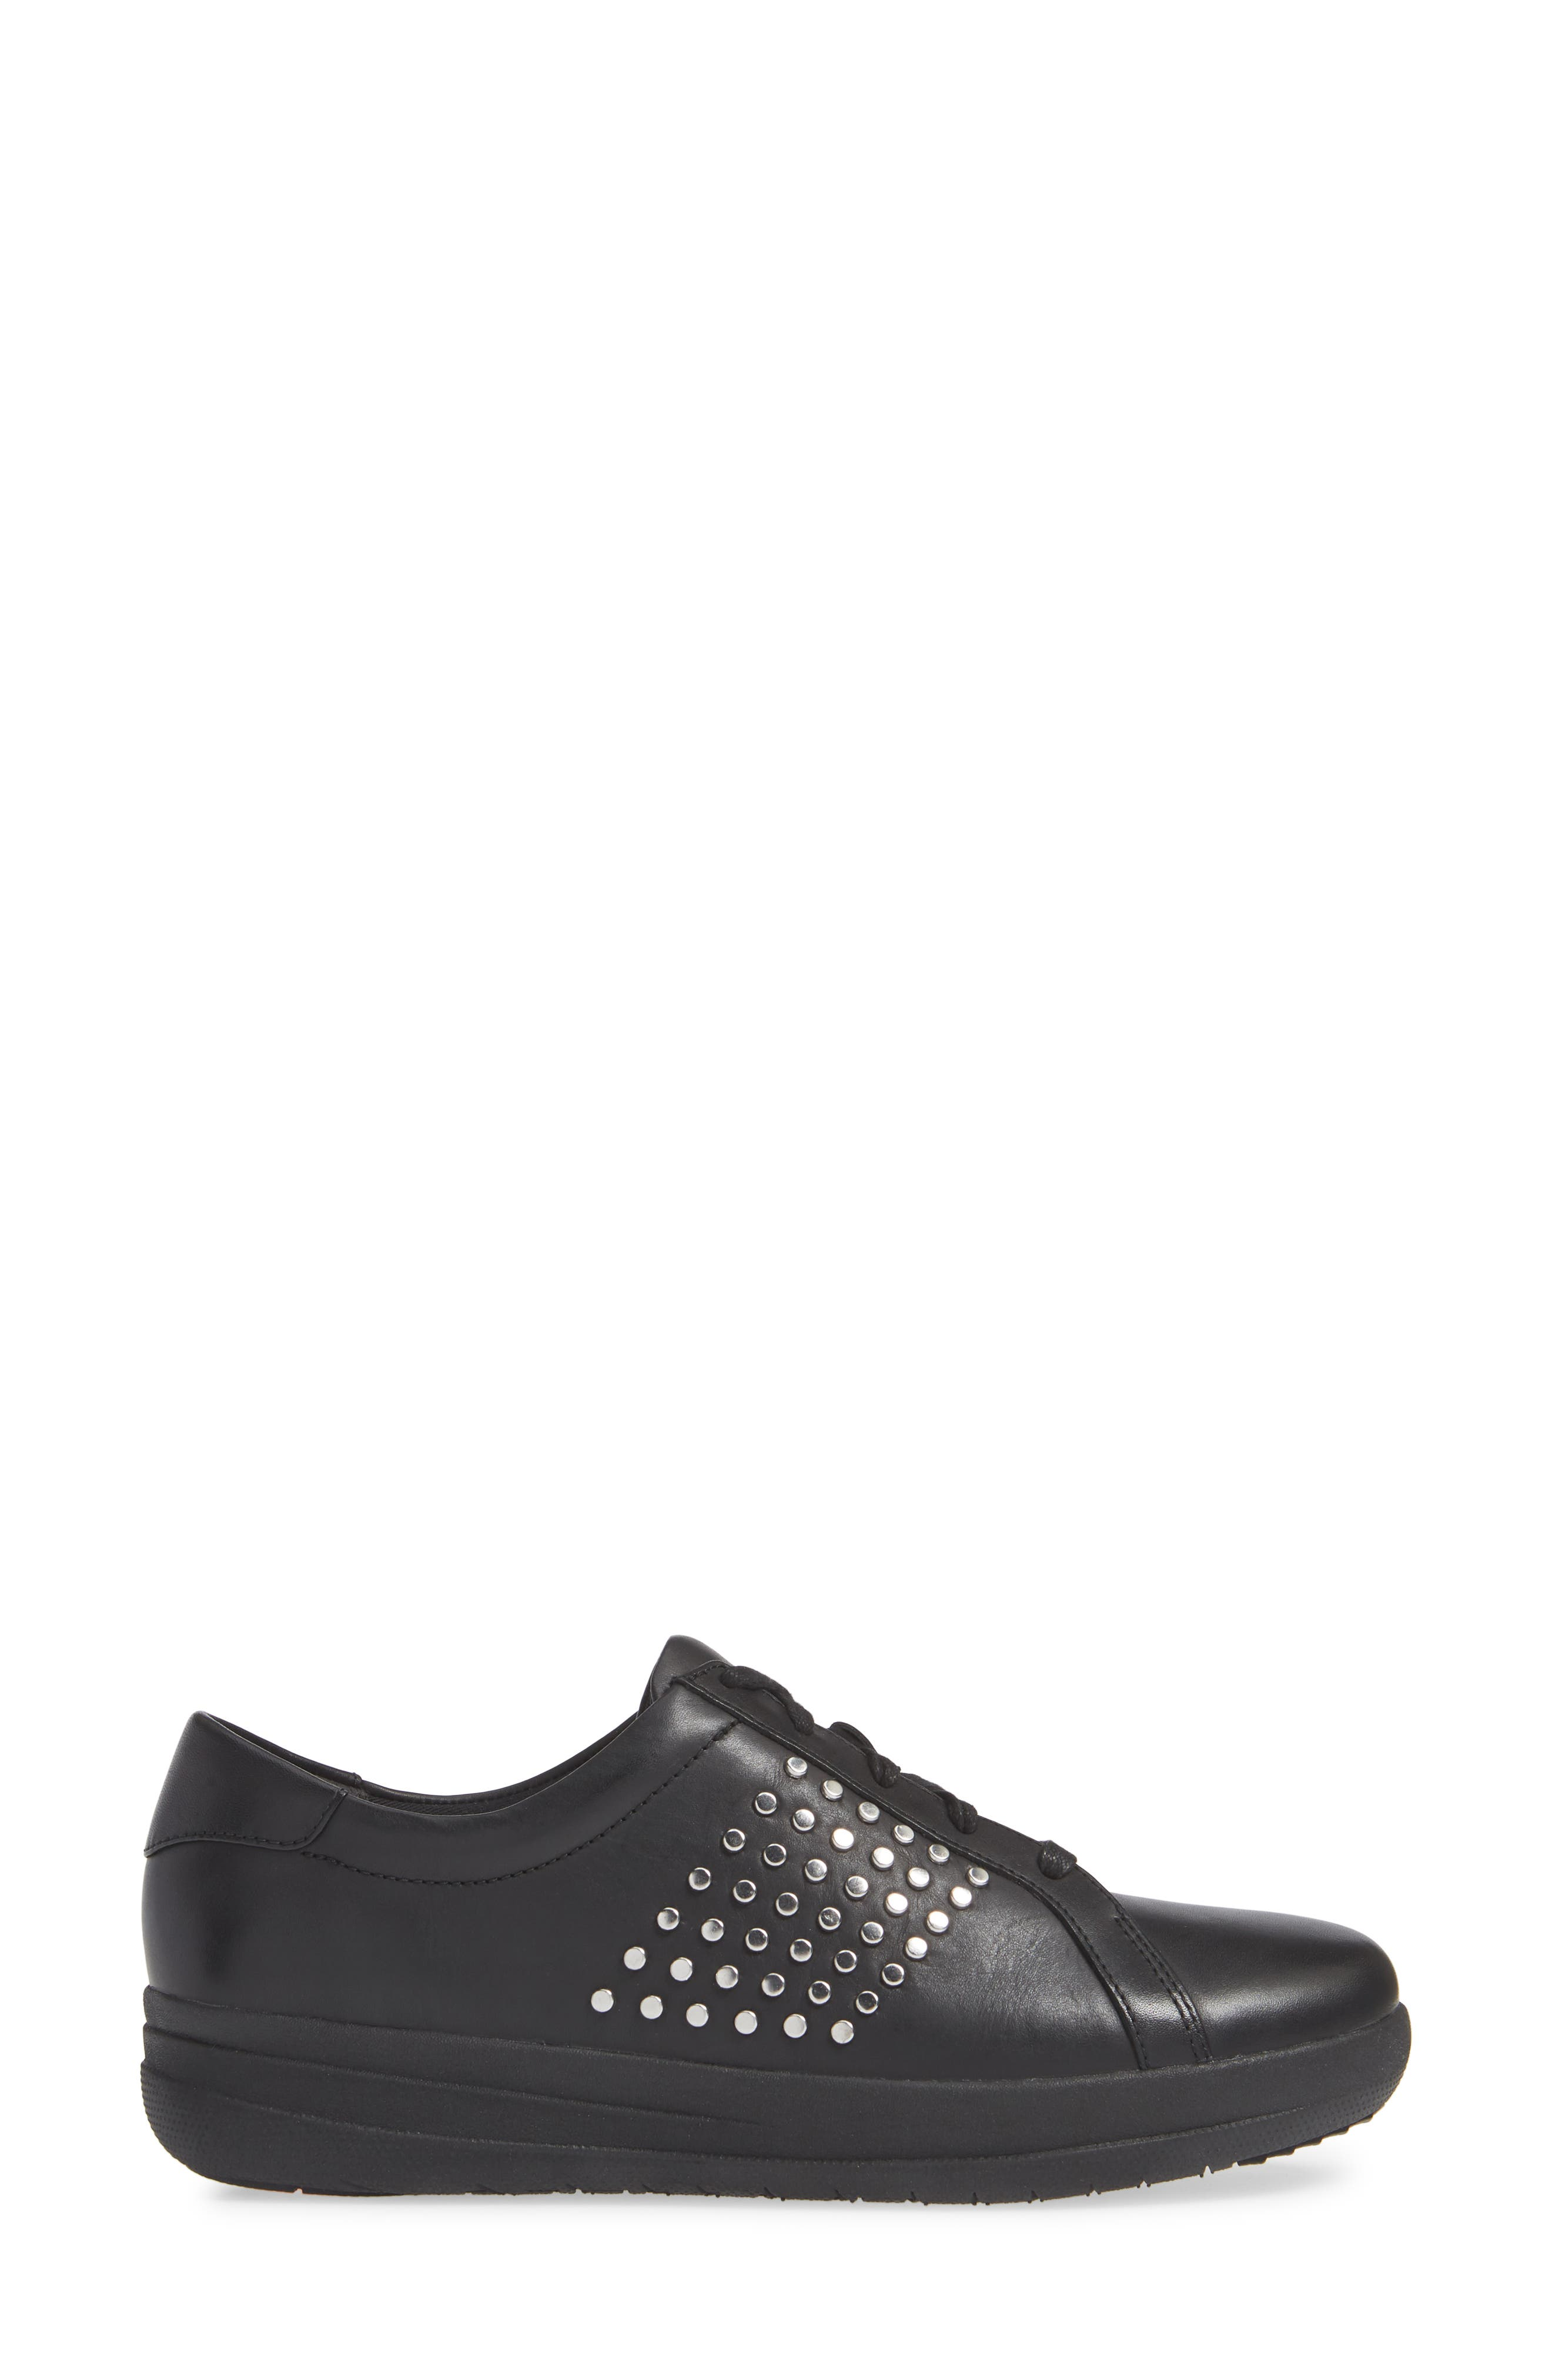 F-Sporty II Studded Sneaker,                             Alternate thumbnail 3, color,                             BLACK LEATHER